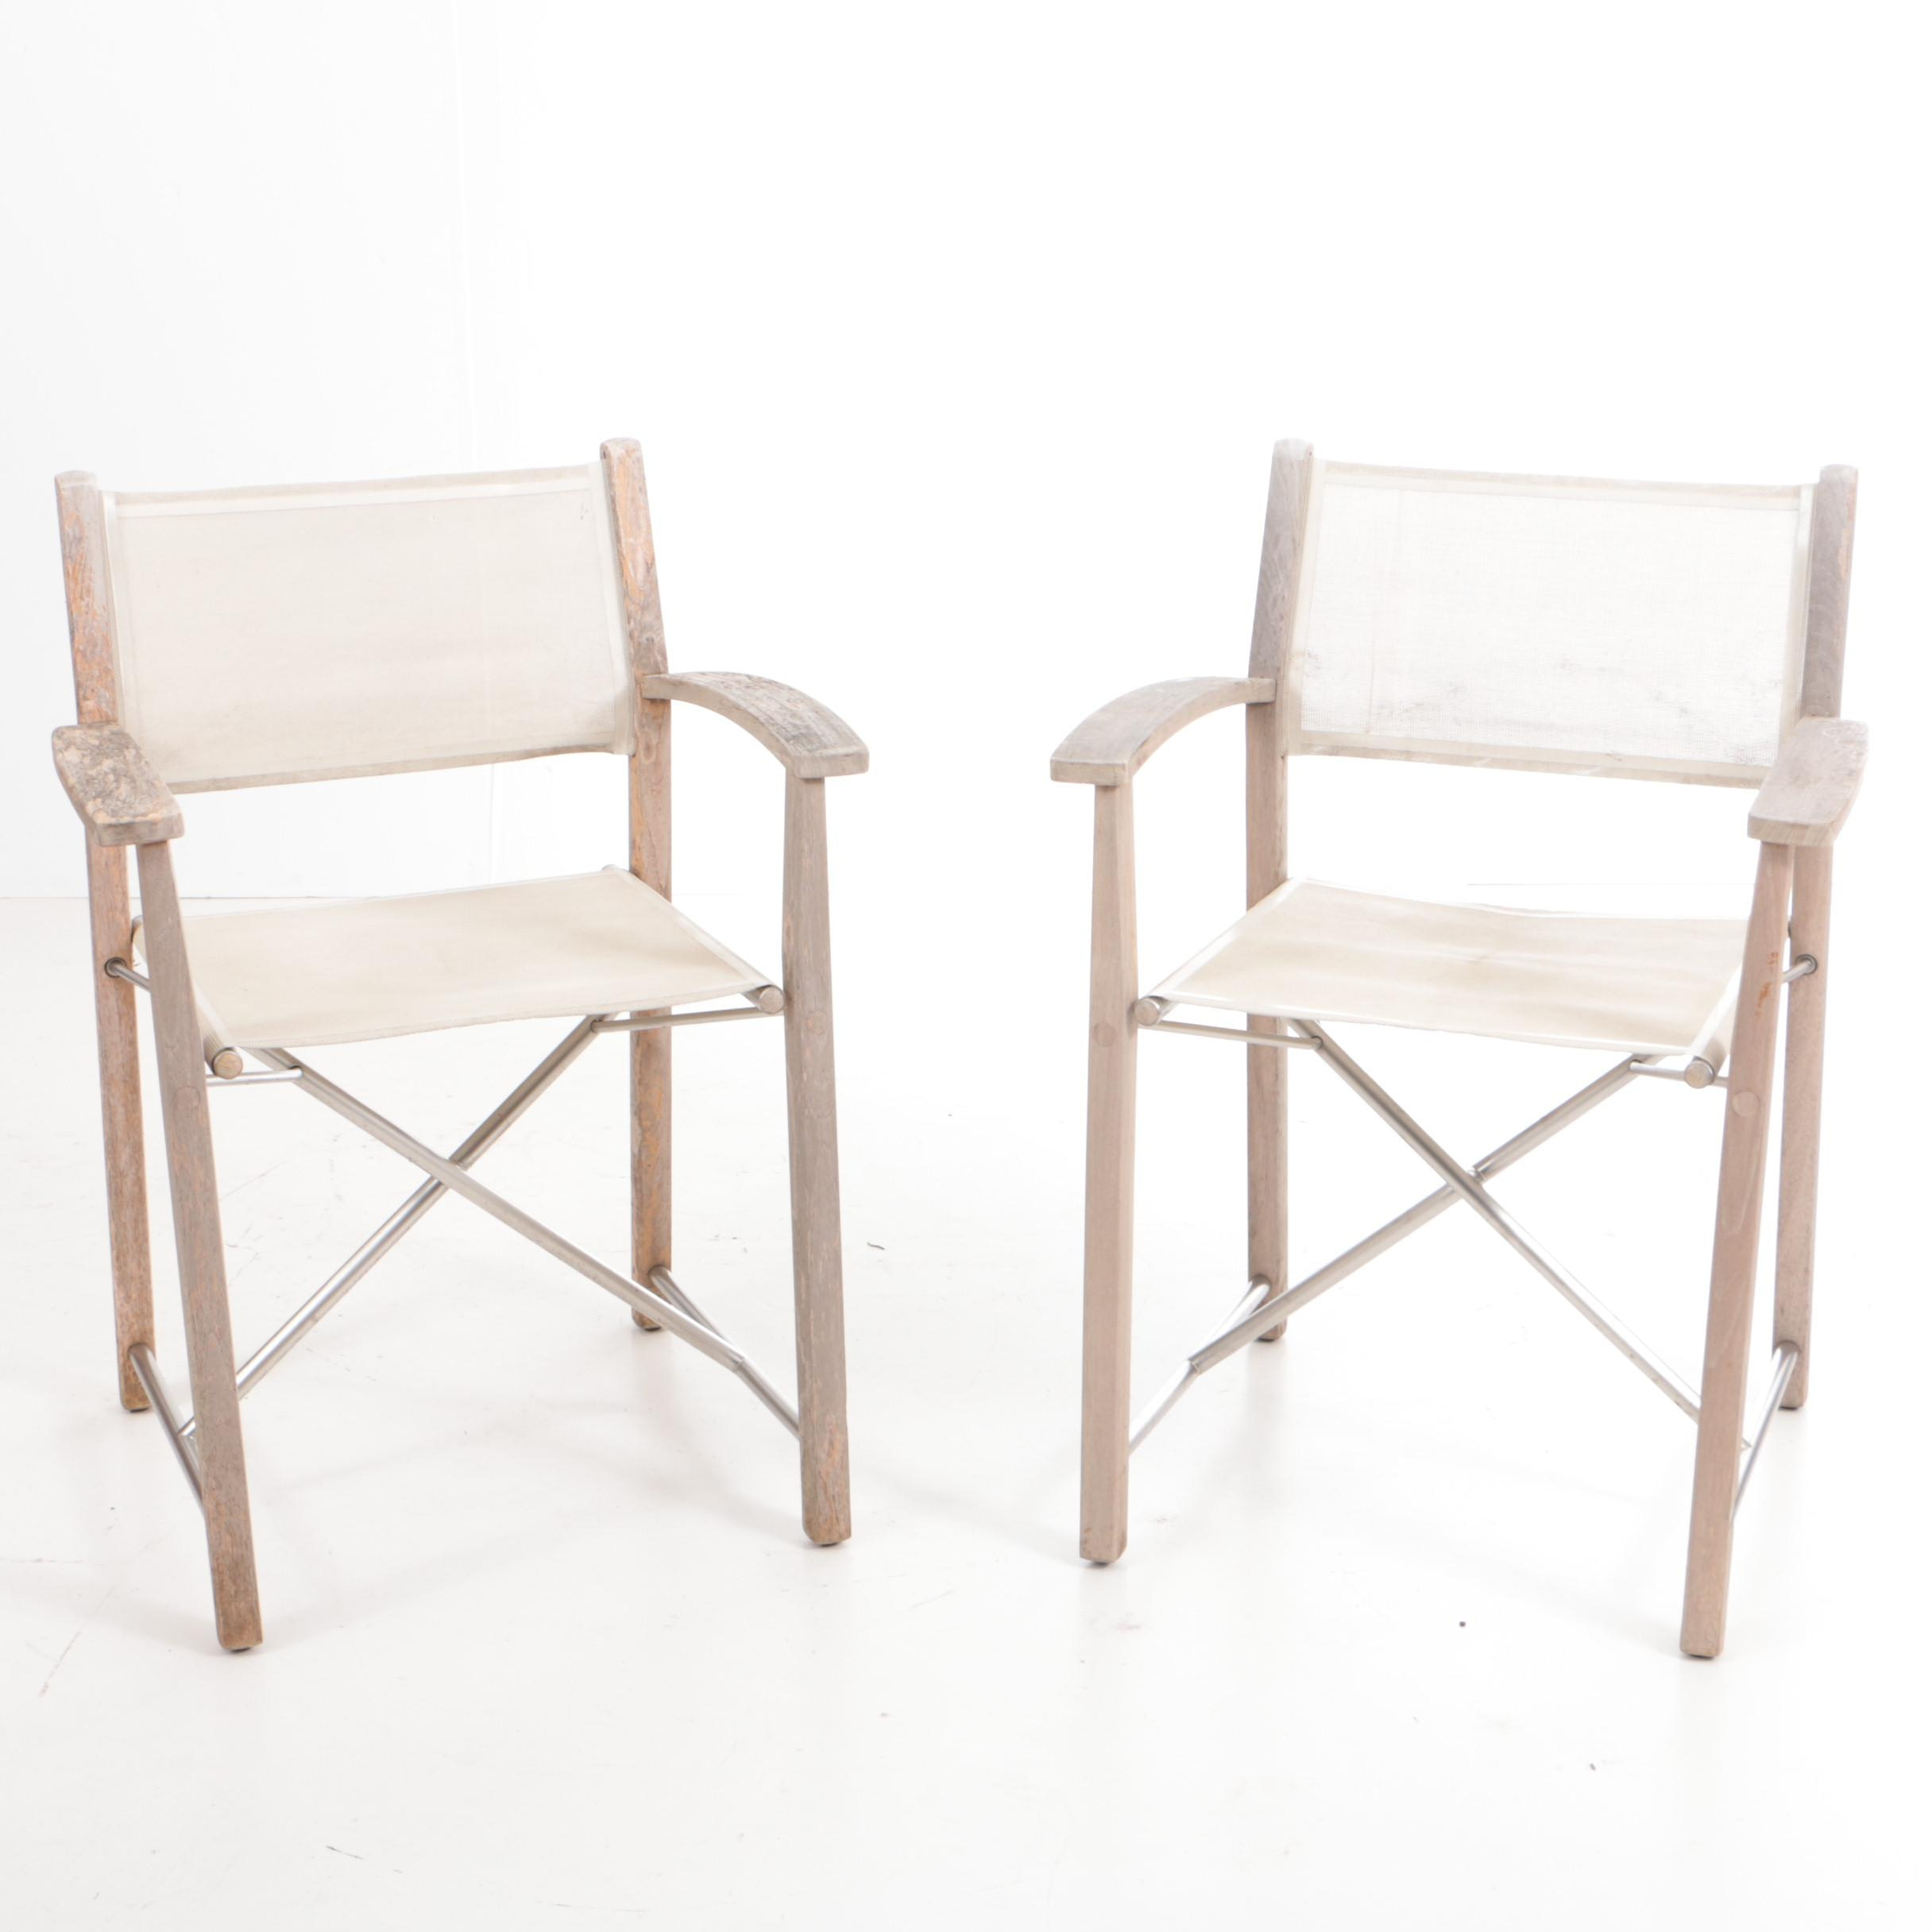 Pair of Gloster Teak Folding Chairs with Sling Seat